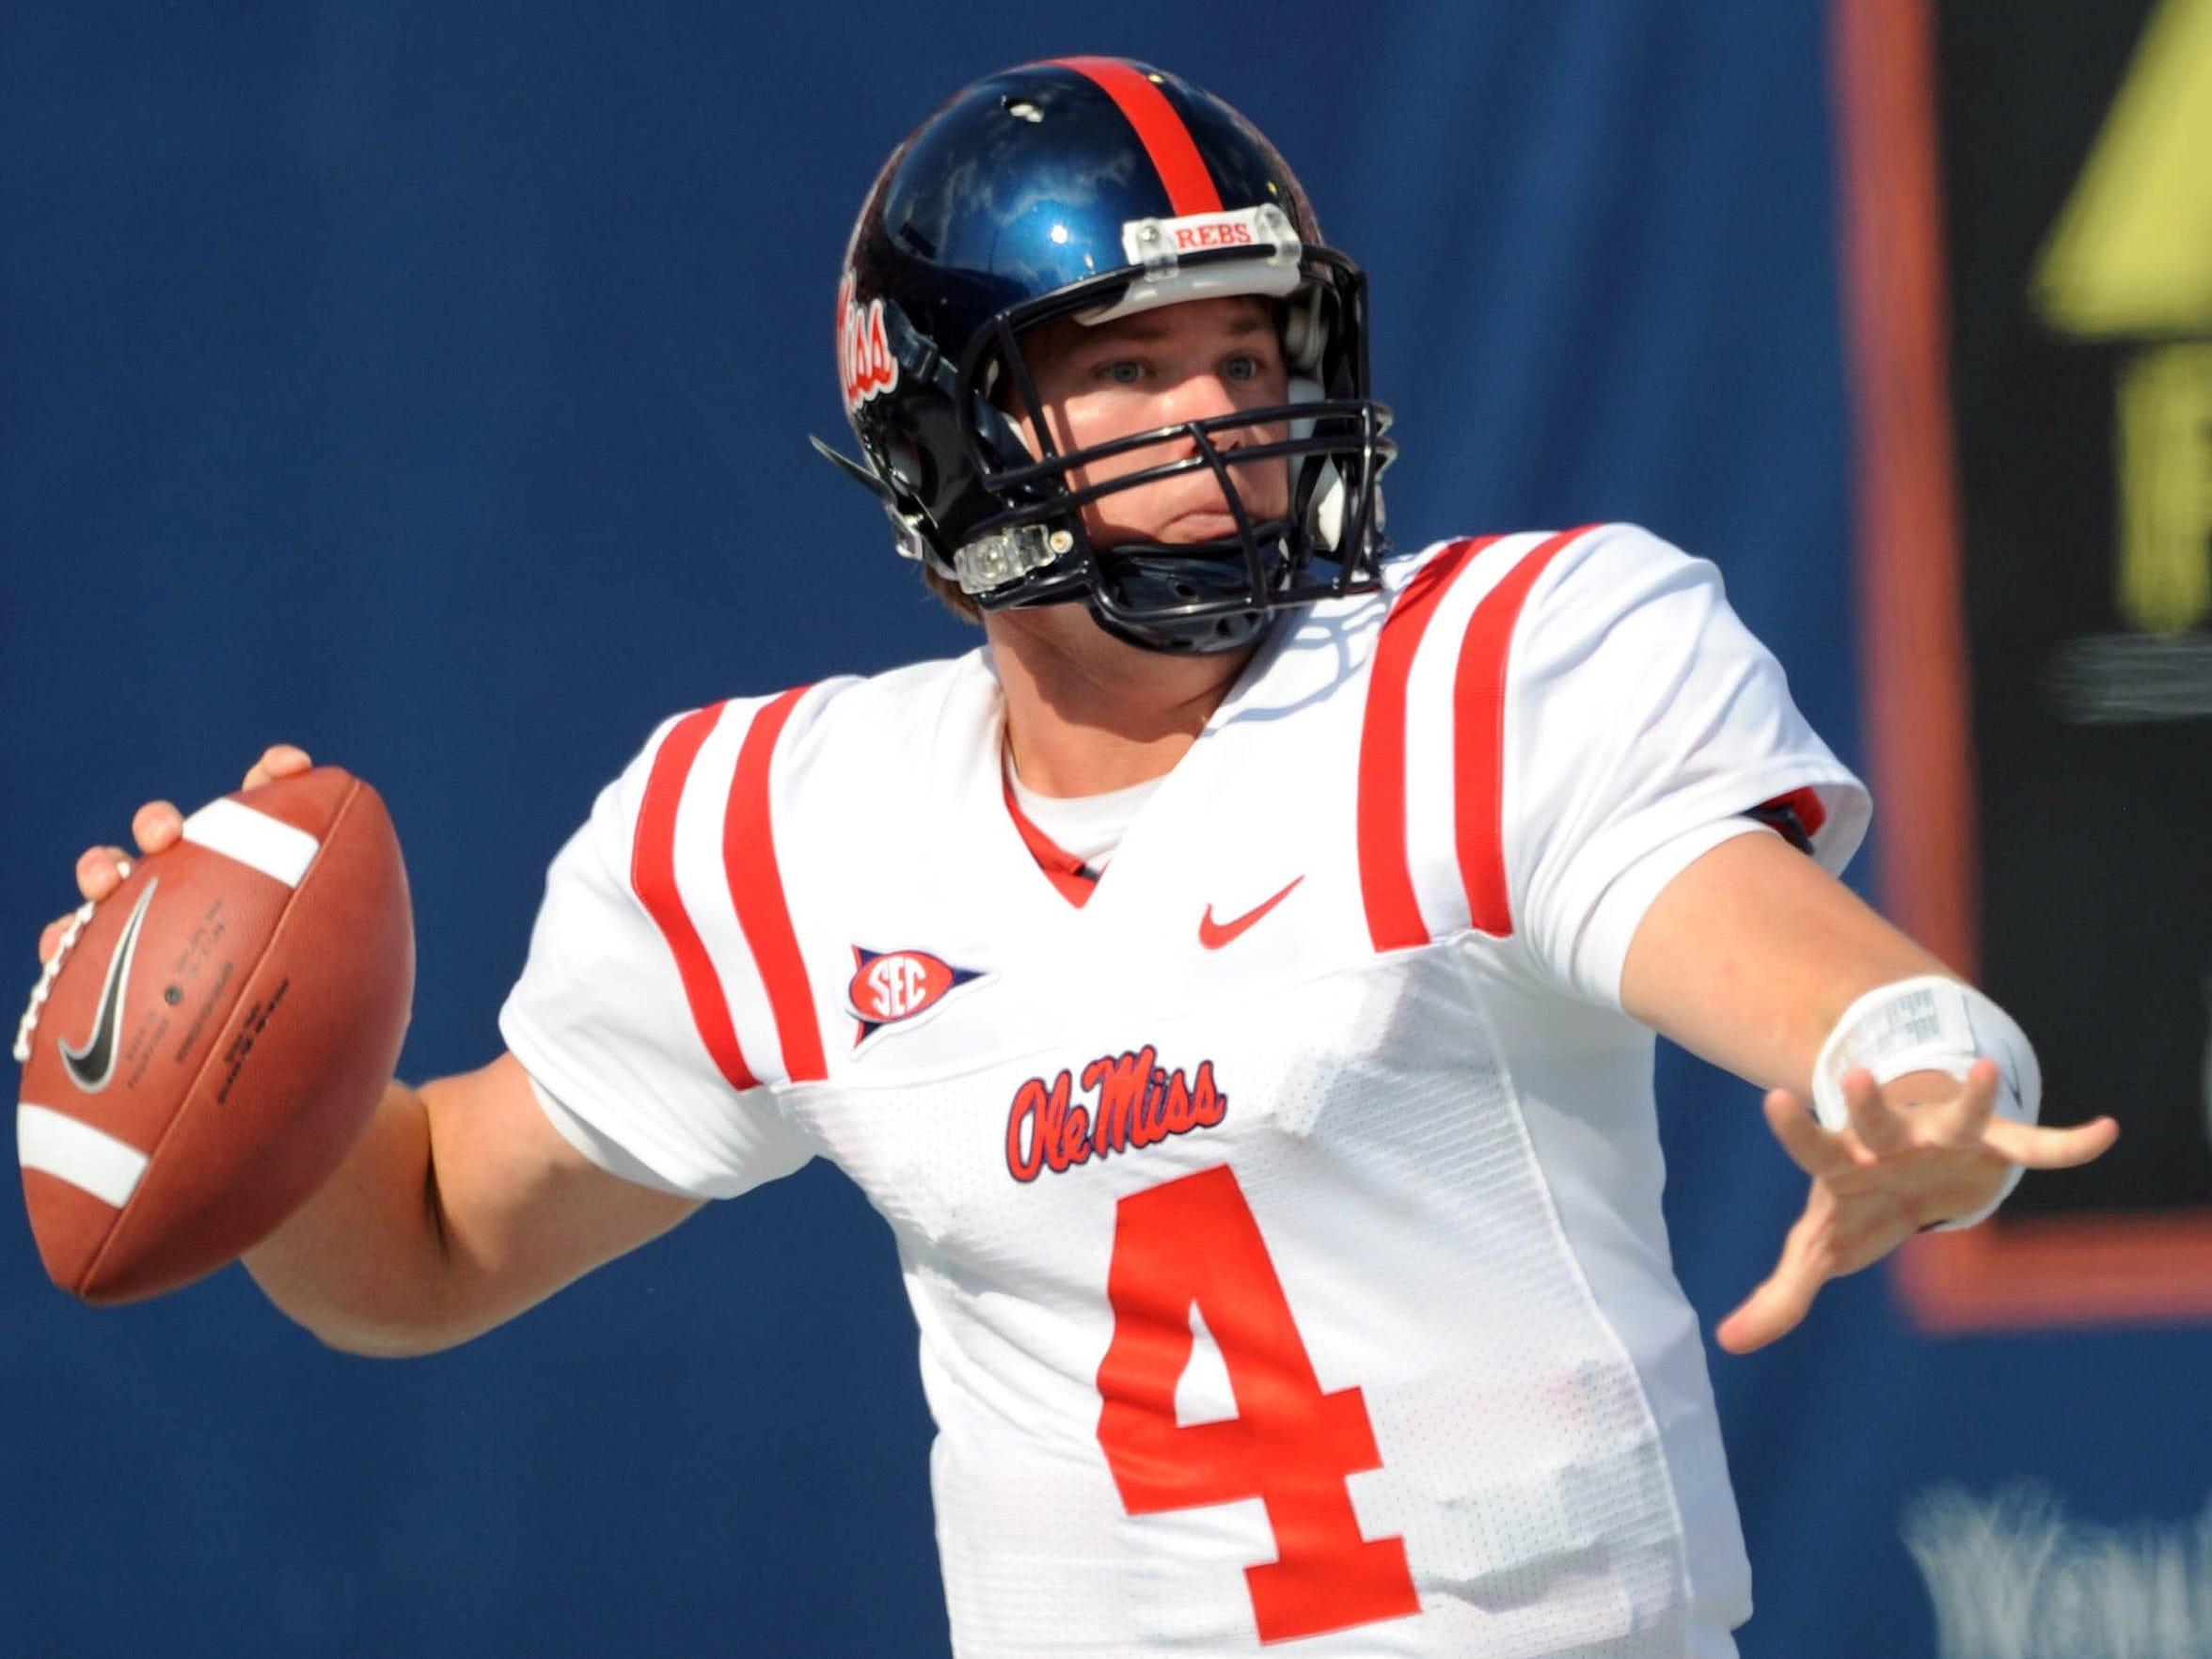 Former Ole Miss quarterback Jevan Snead was found dead in Austin on Sept. 21, 2019.